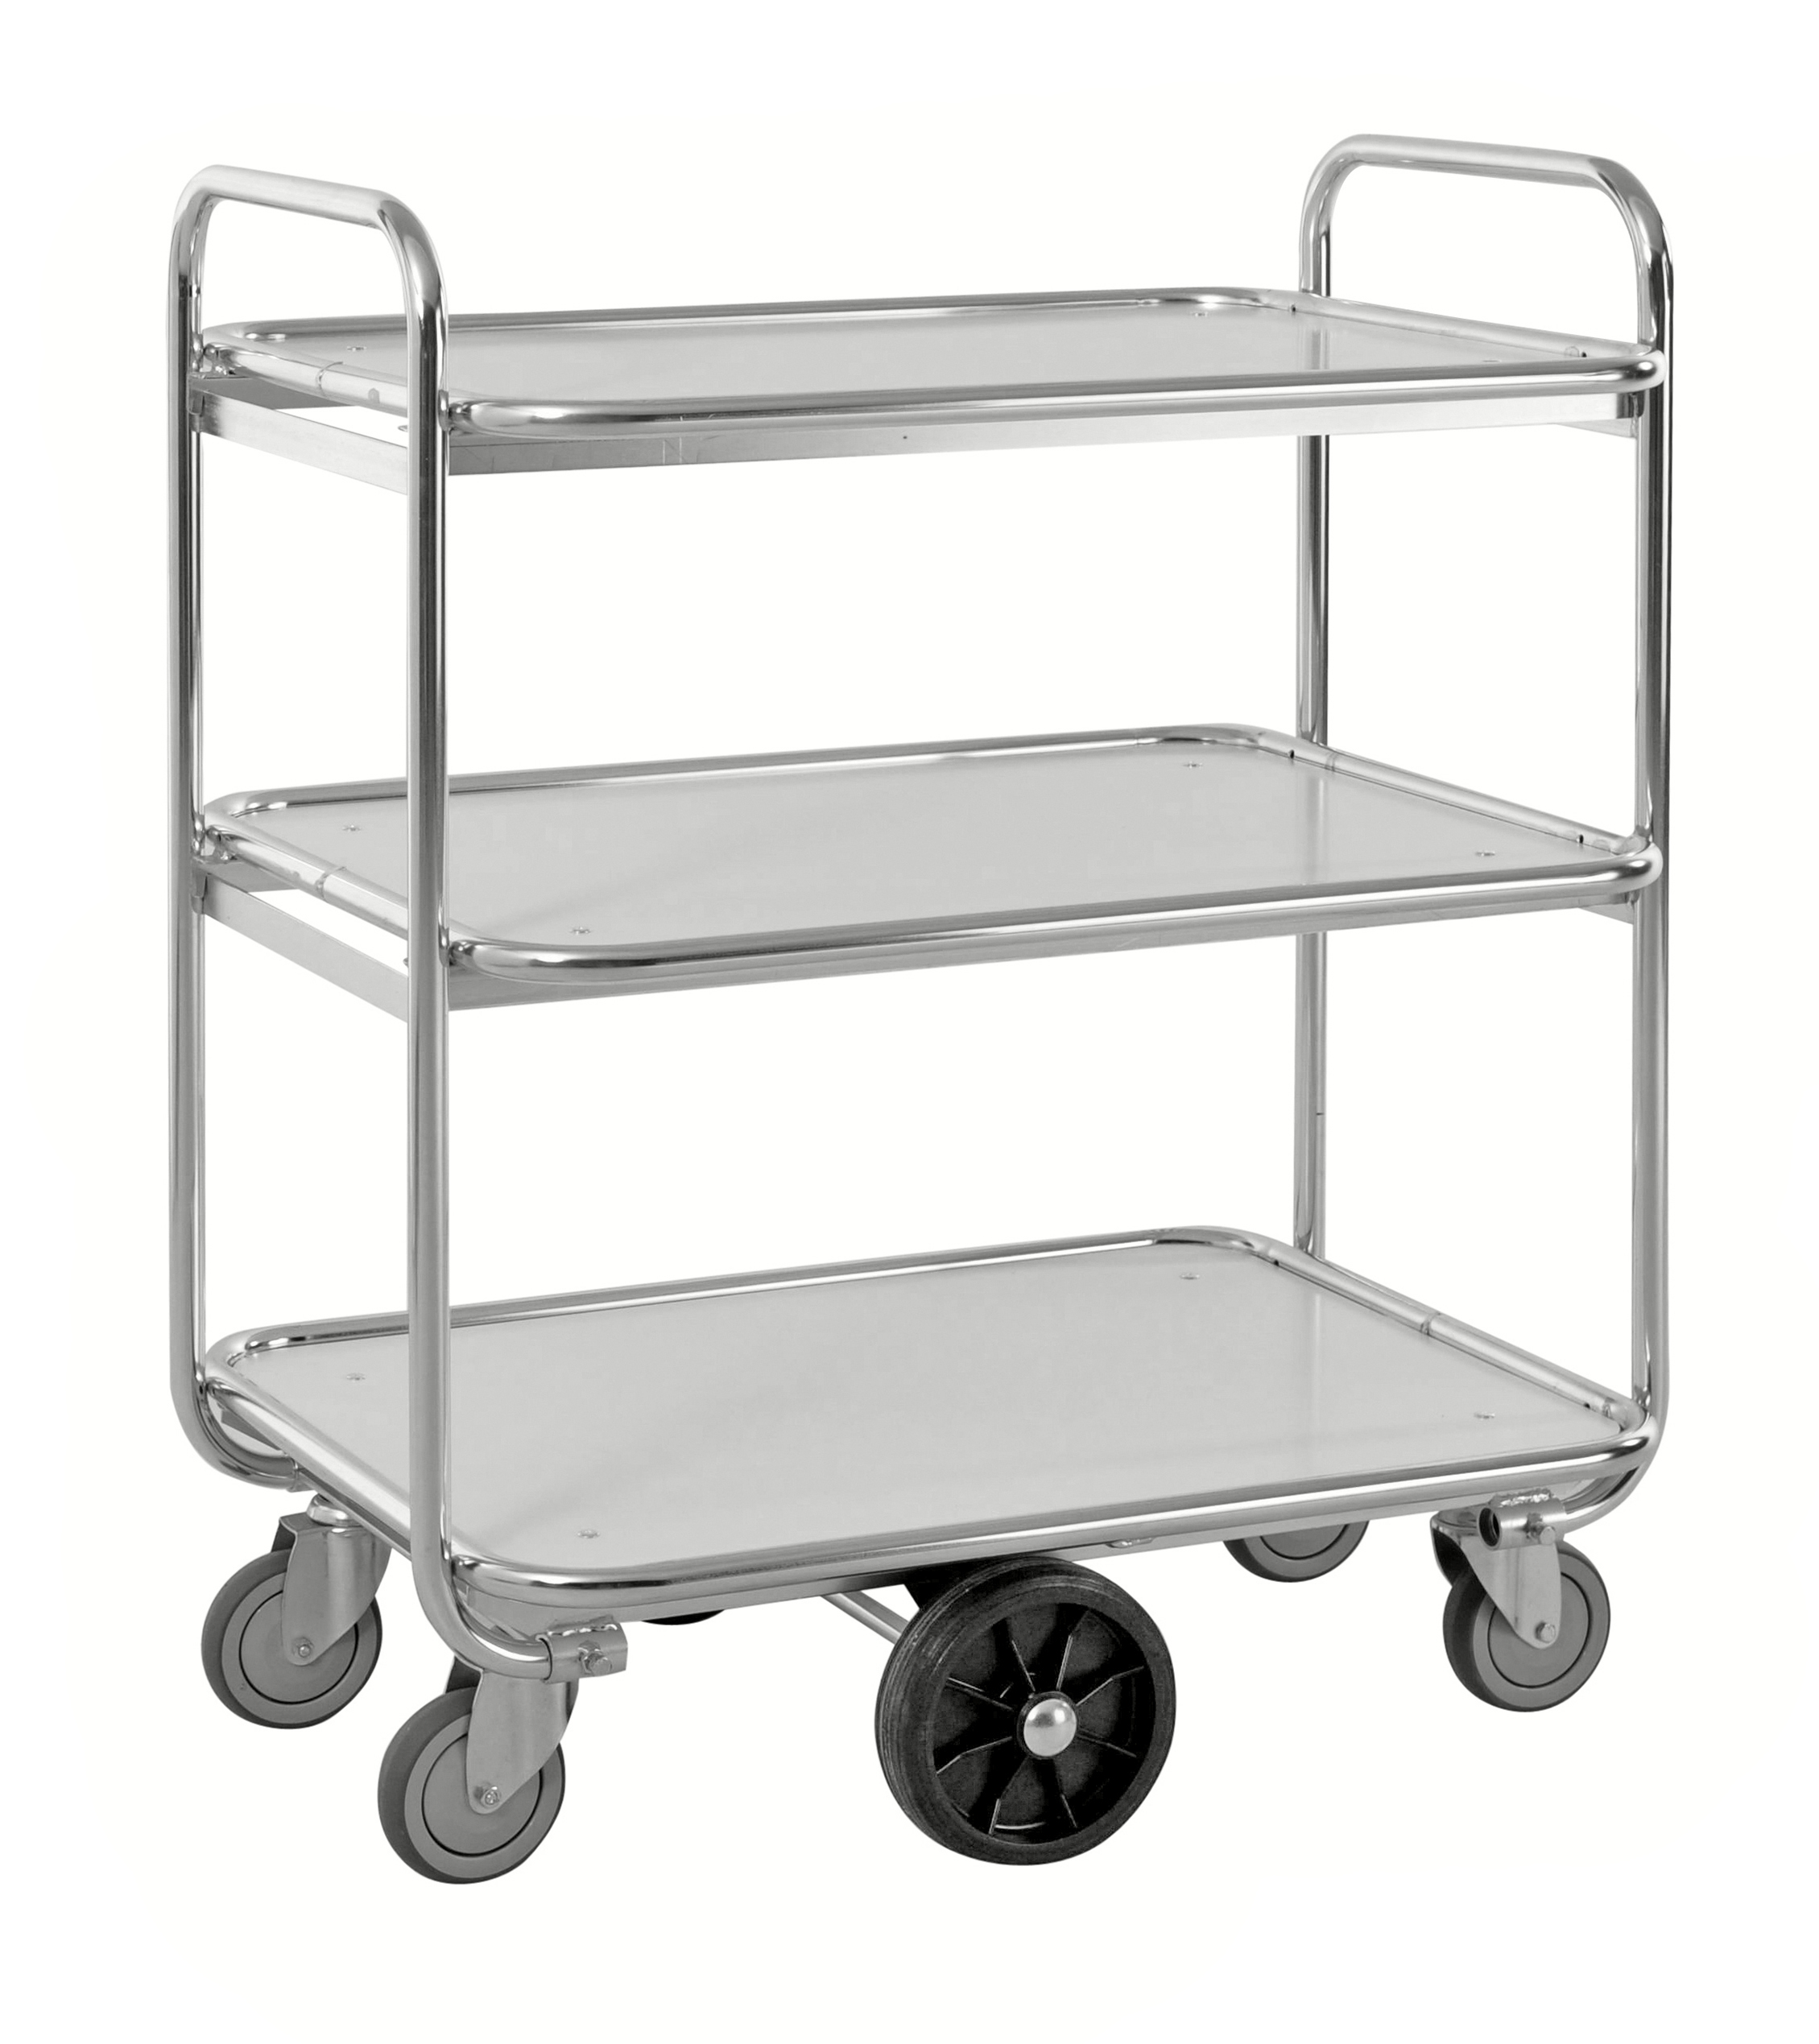 KM8500-3L | Picking trolley 3 levels